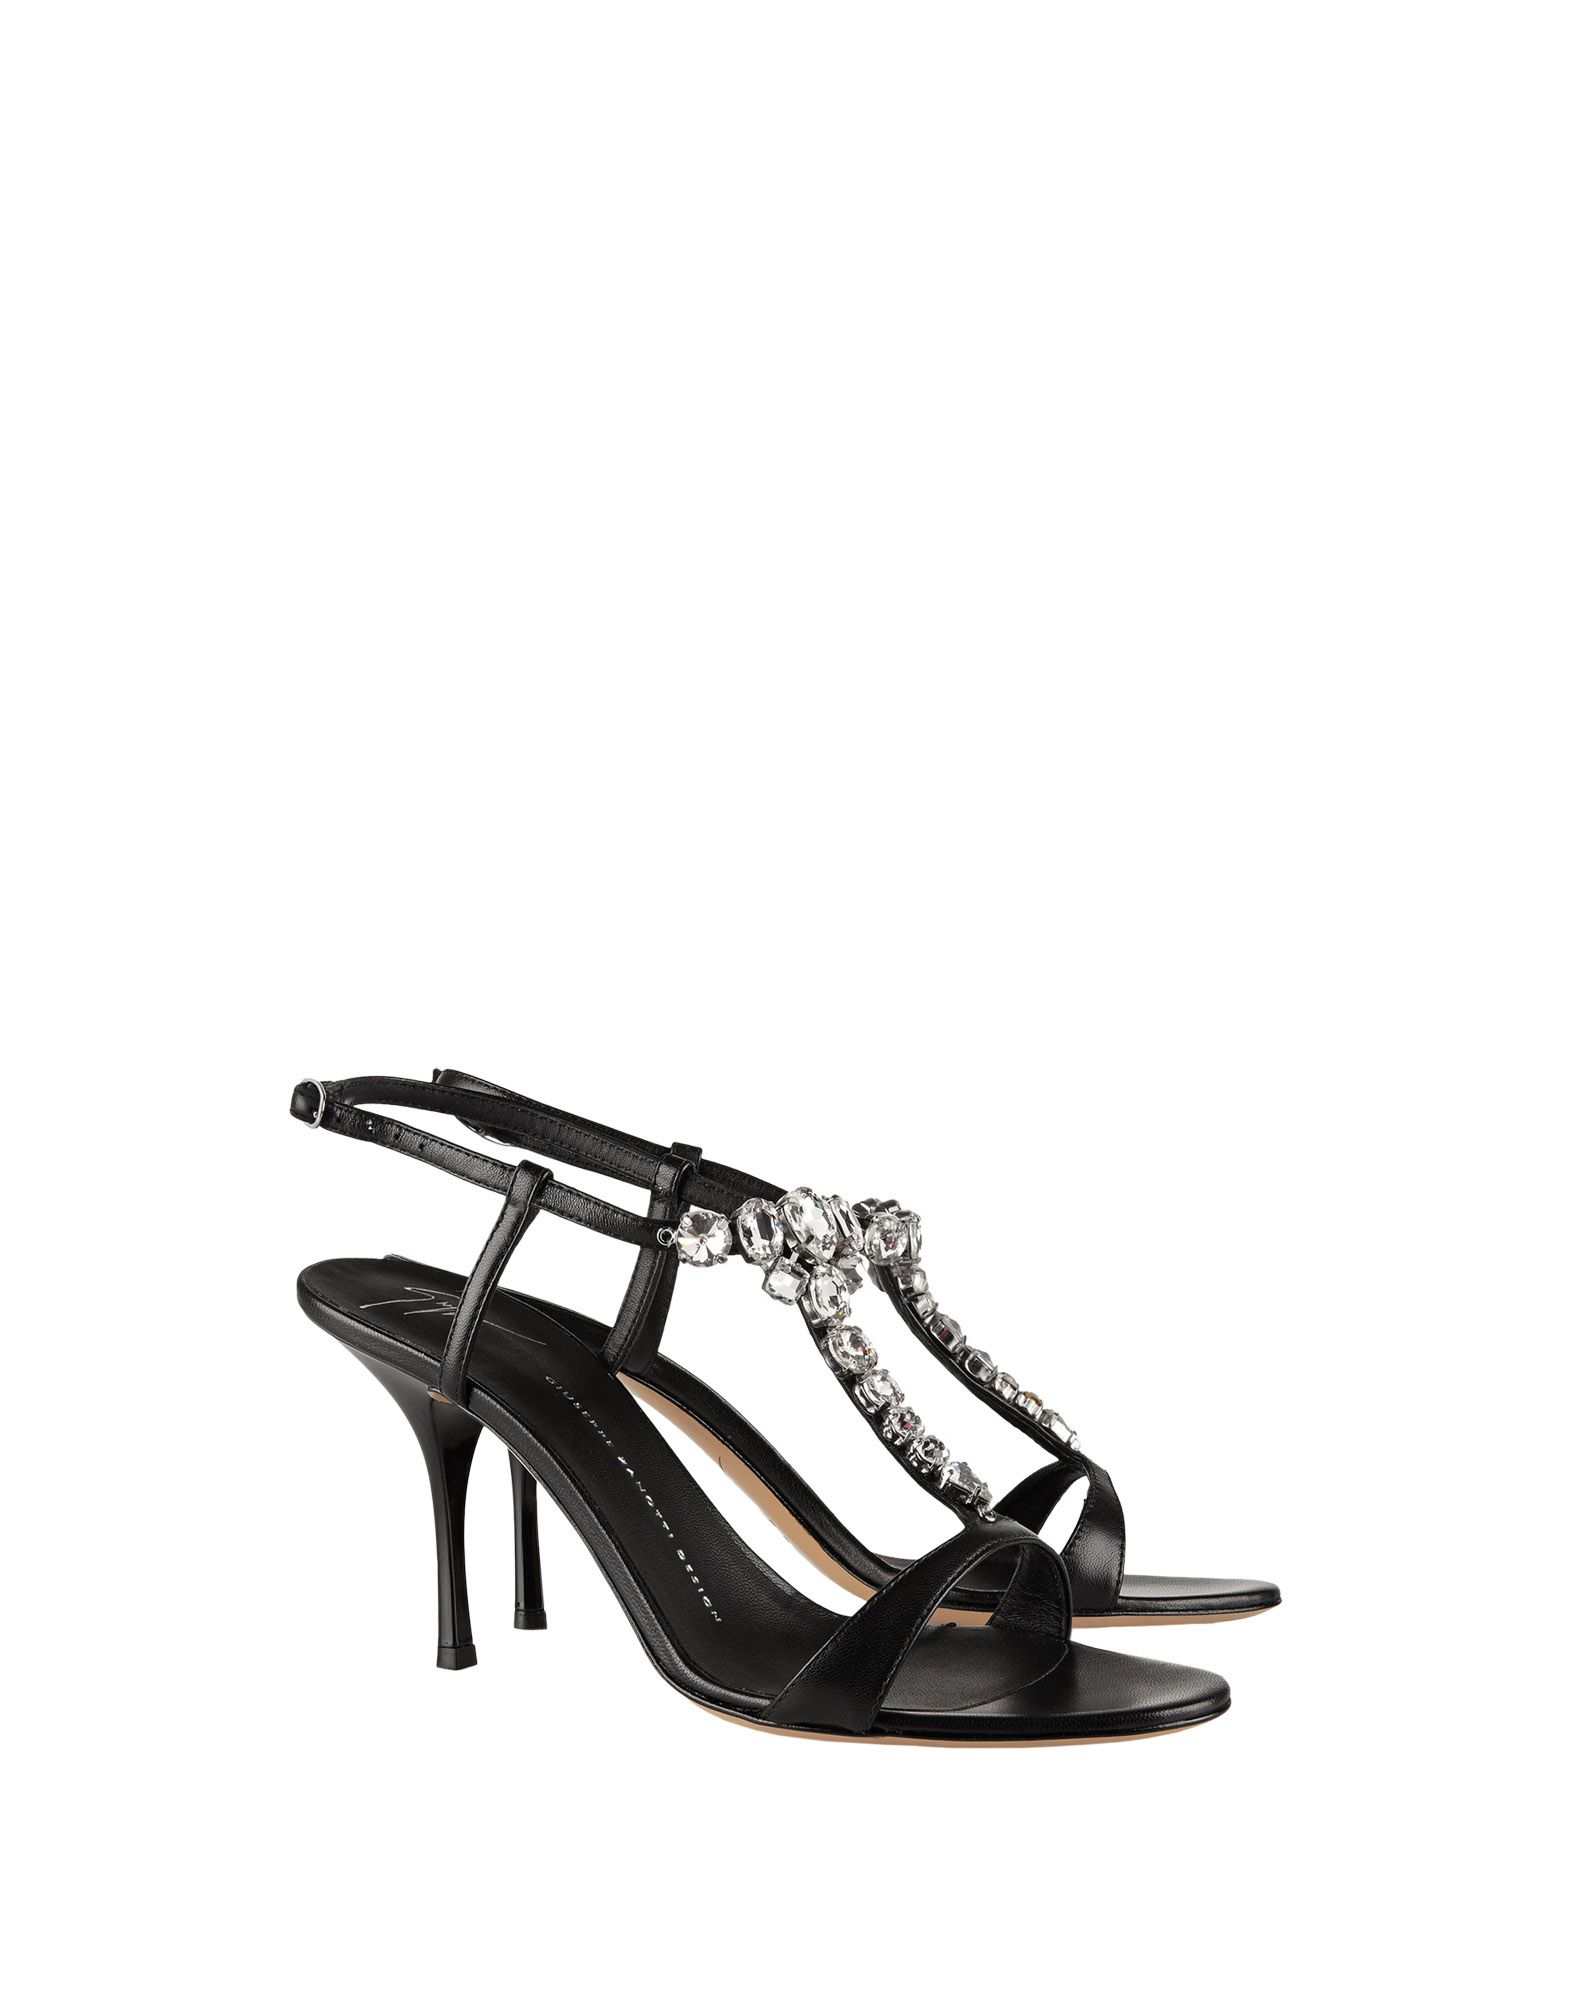 Giuseppe Zanotti Sandals - Women on Giuseppe Zanotti Sandals online on Women  Australia - 11524377BT a55061